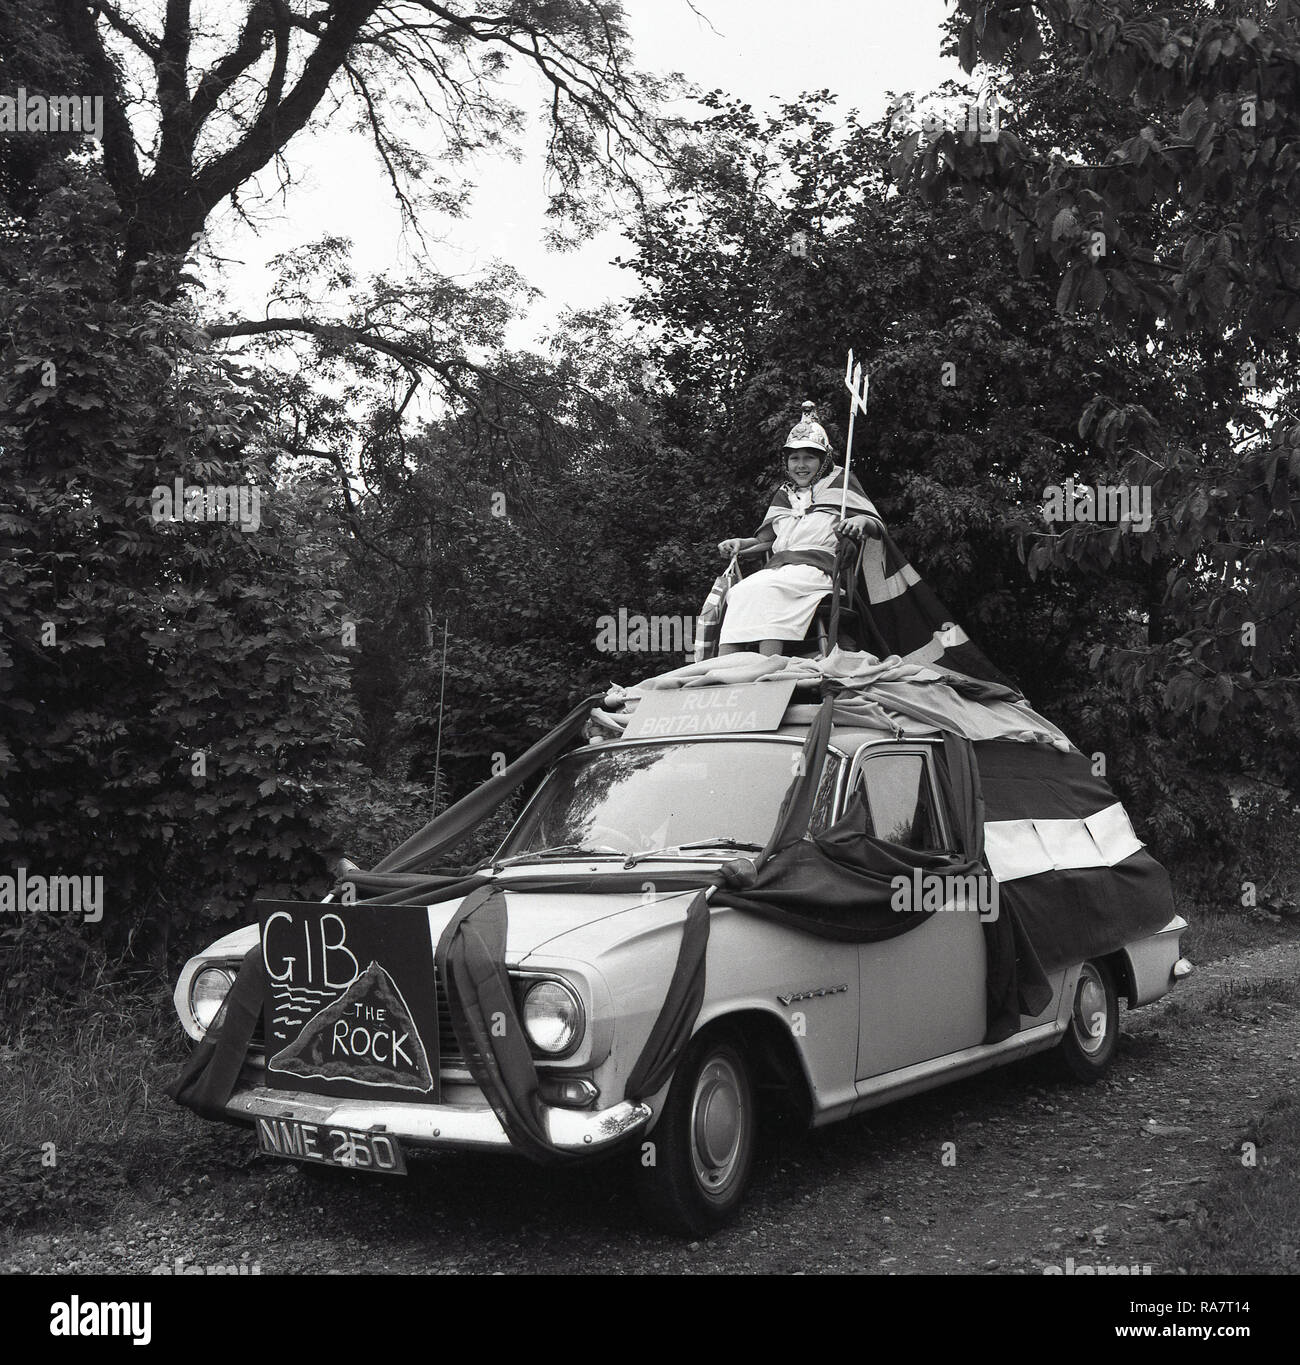 1967, Prestwood village fete, young girl in fancy dress and with a Union Jack cape sitting on a chair fixed on the top of a decorated car  with a 'Rule Britannia' sign on it, England, UK - Stock Image